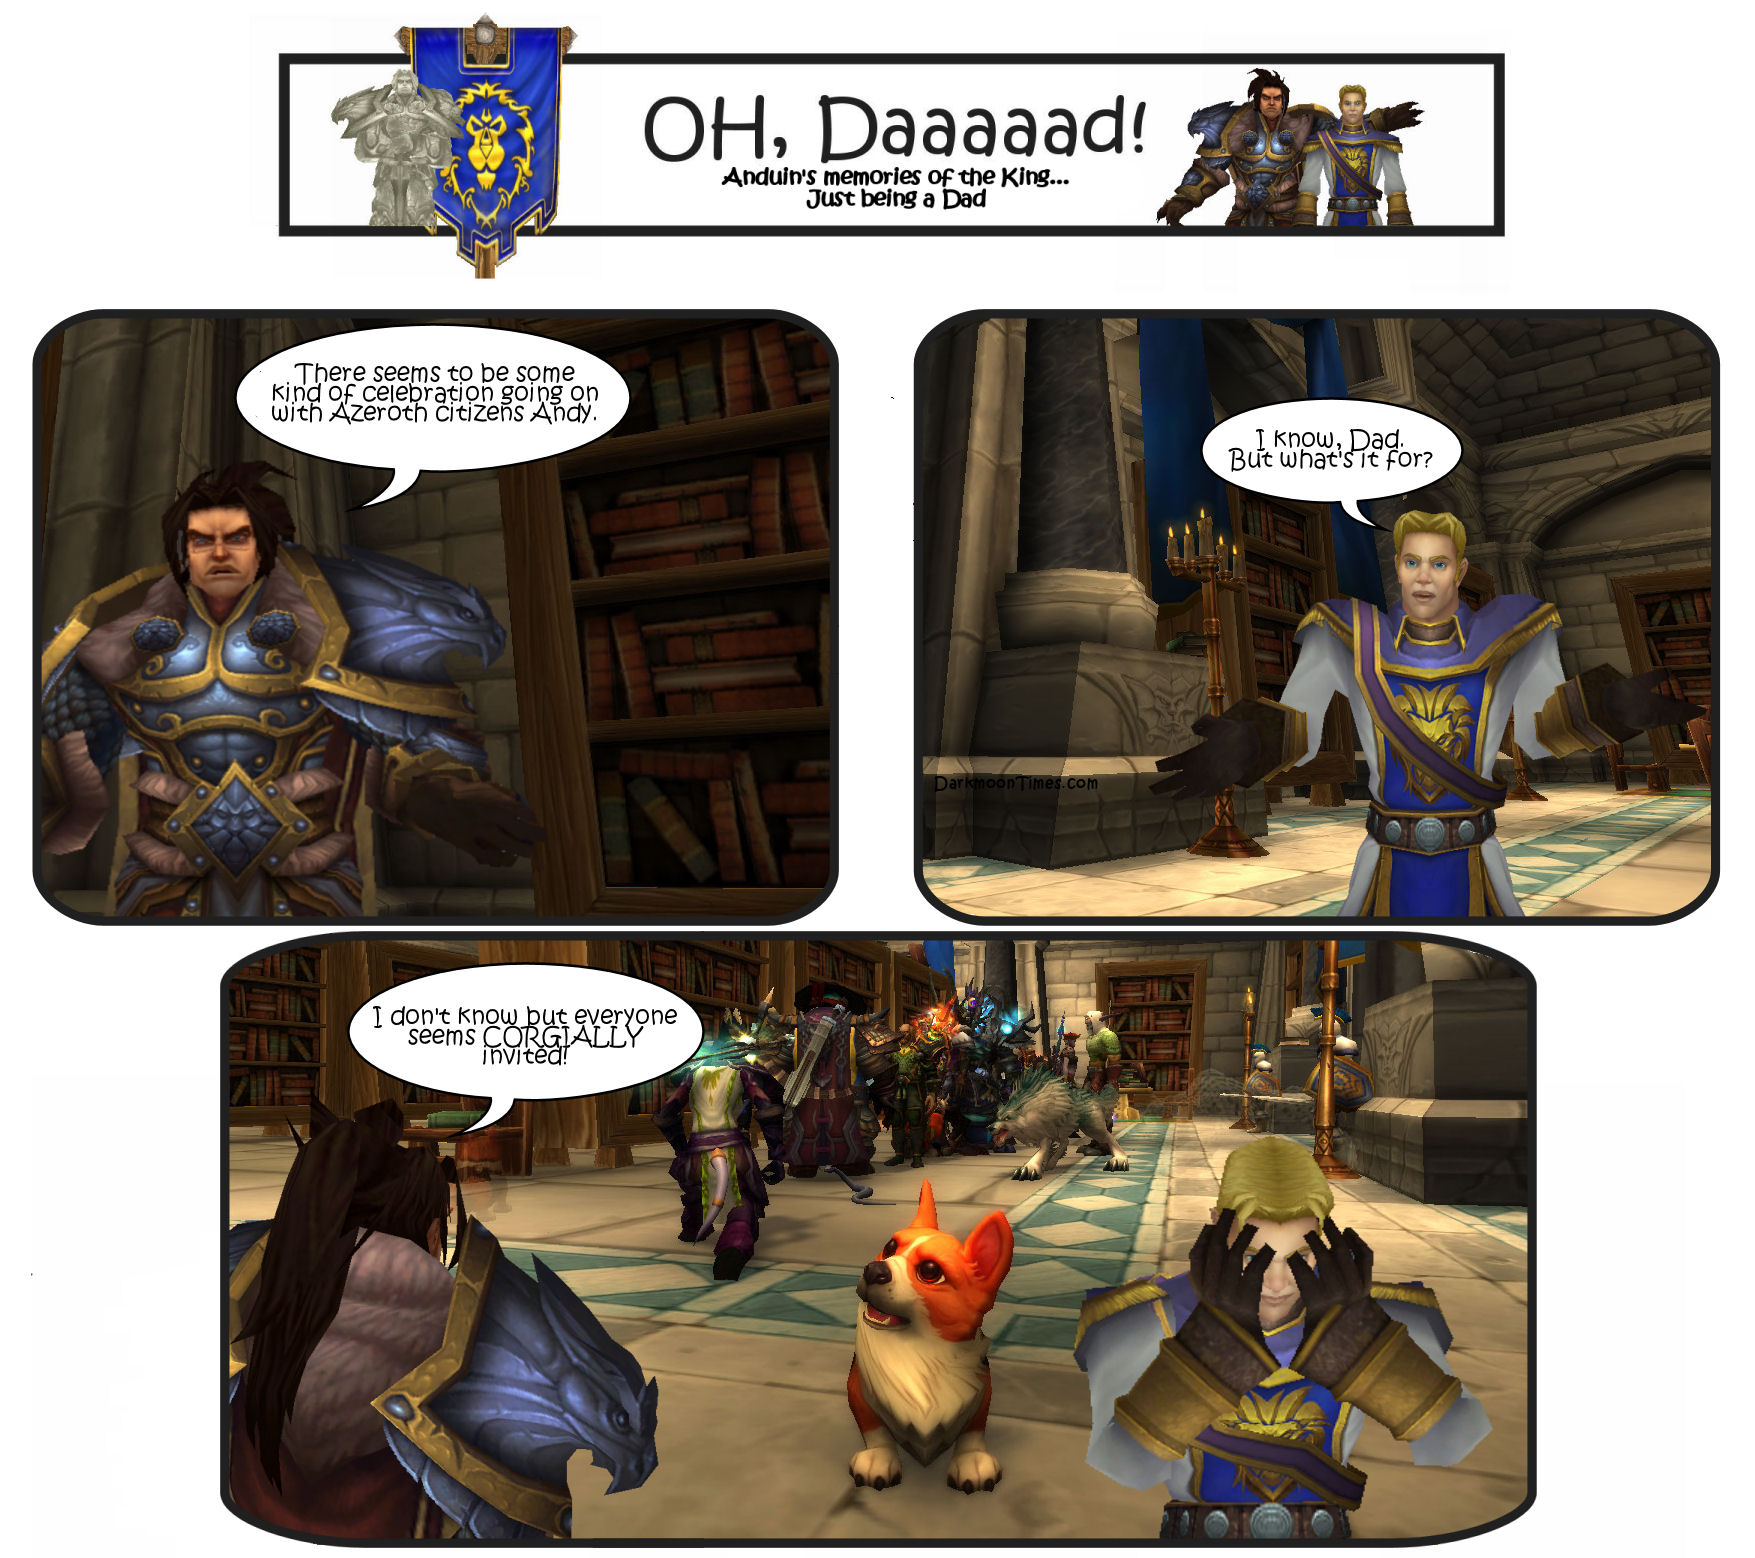 Image shows Variann telling Anduin a dad joke about being Corgially invited.  Has a Corgi pictured.